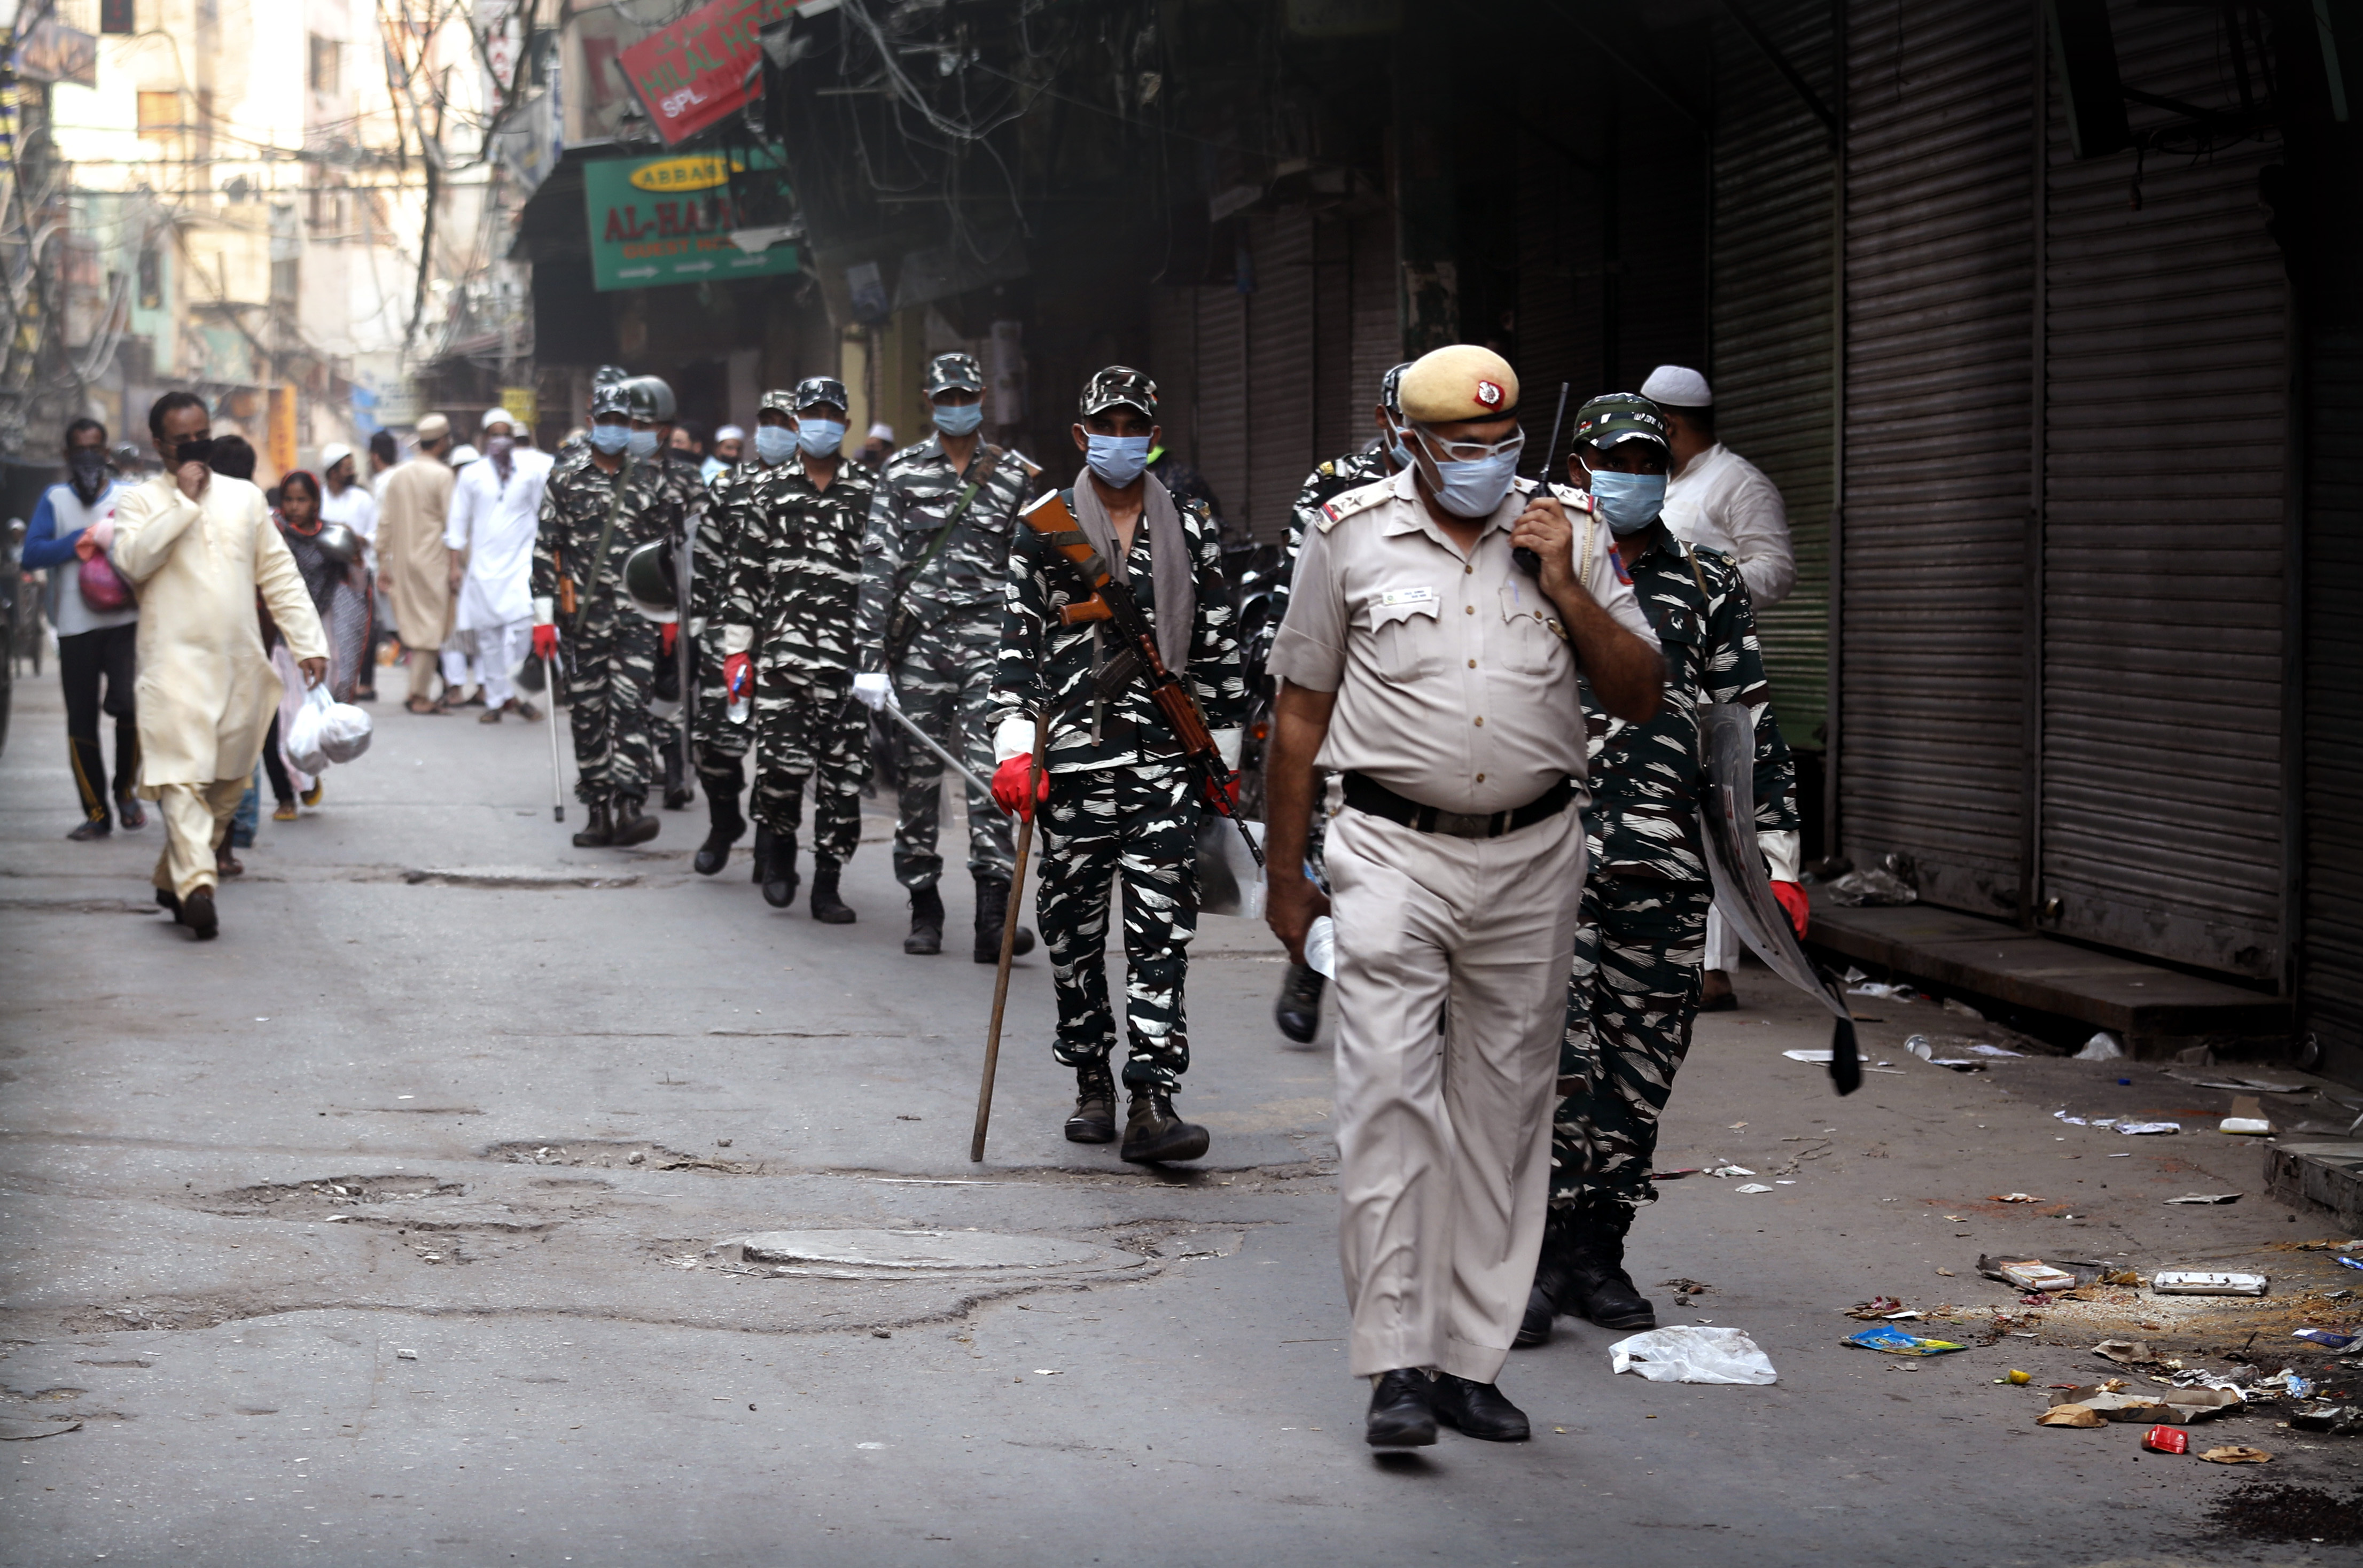 Indian policemen patrol during Eid al-Fitr near the Jama Mosque at the old quarters of New Delhi, India, Monday, May 25, 2020. The holiday of Eid al-Fitr, the end of the fasting month of Ramadan, a usually joyous three-day celebration has been significantly toned down as coronavirus cases soar. (AP Photo/Manish Swarup)